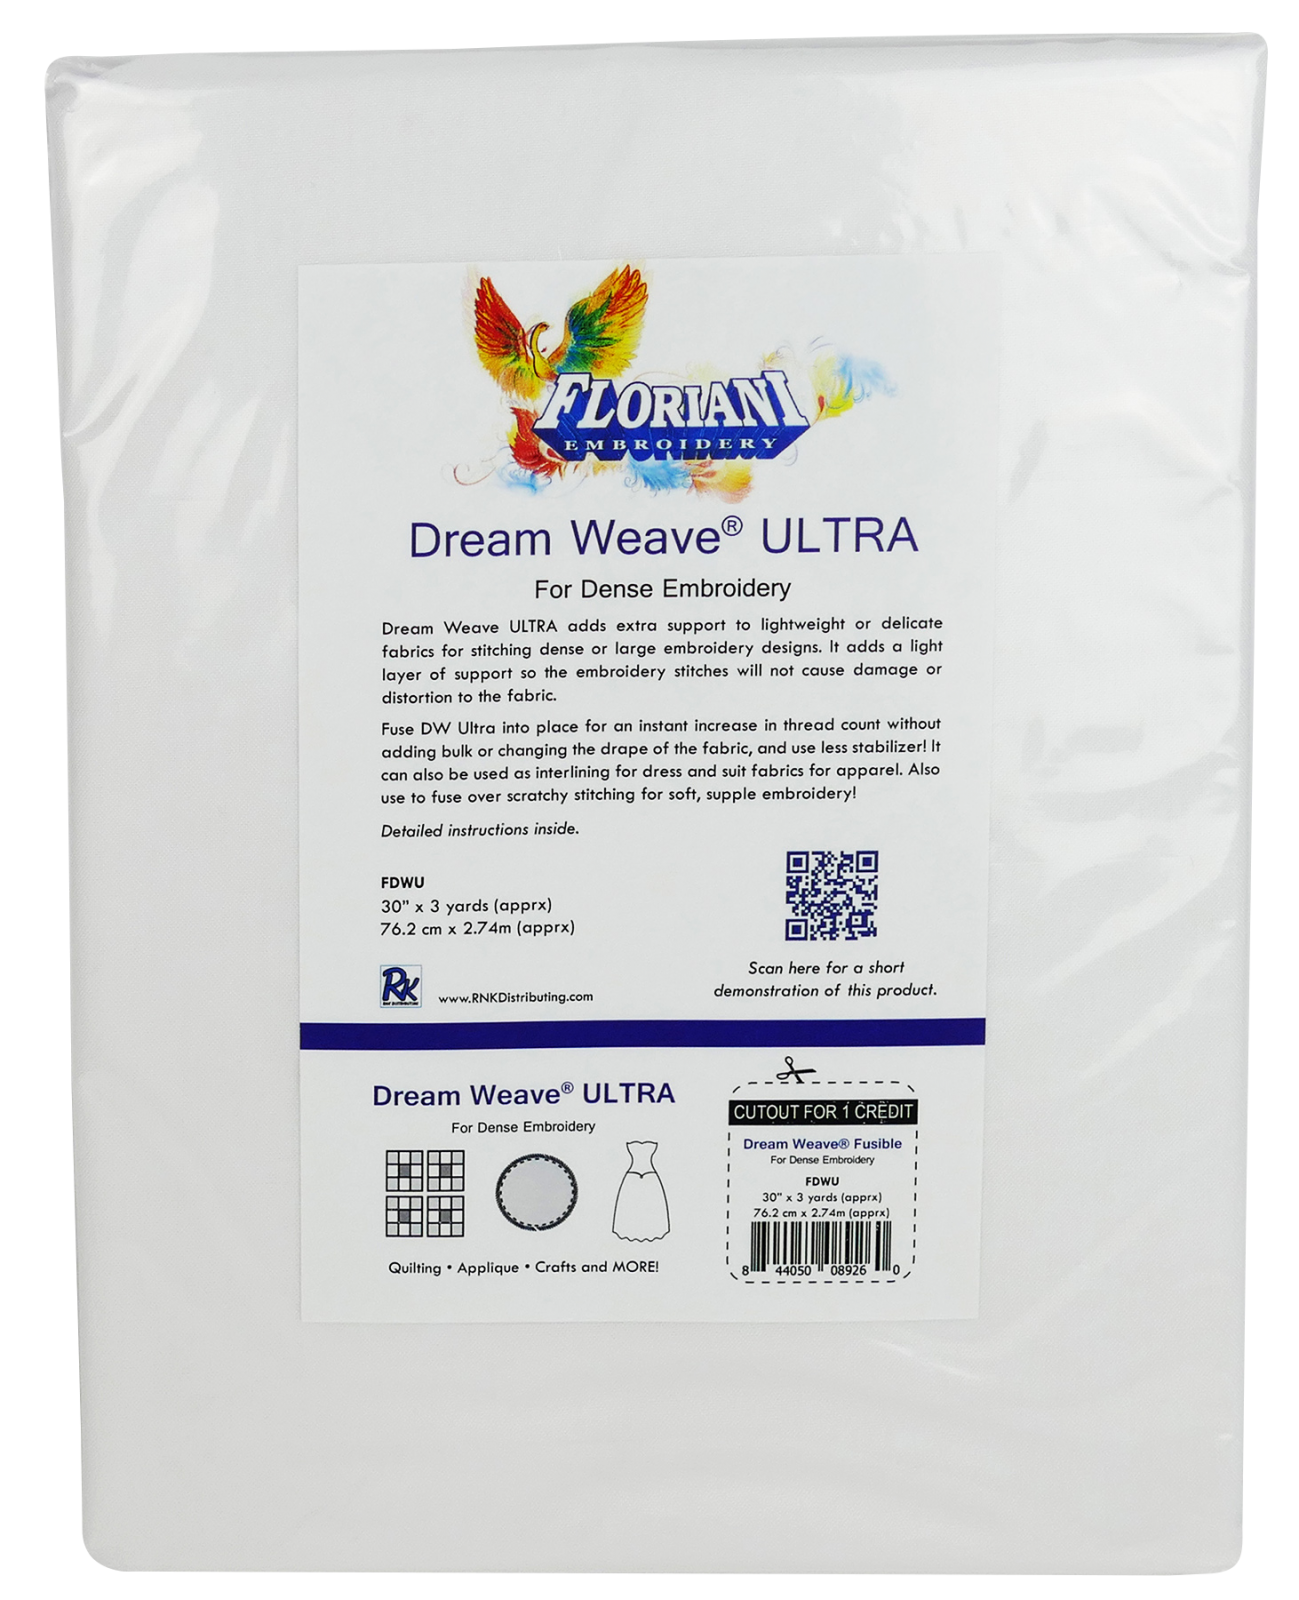 DREAM WEAVE ULTRA Fusible 3 YD - Floriani Stabilizer -